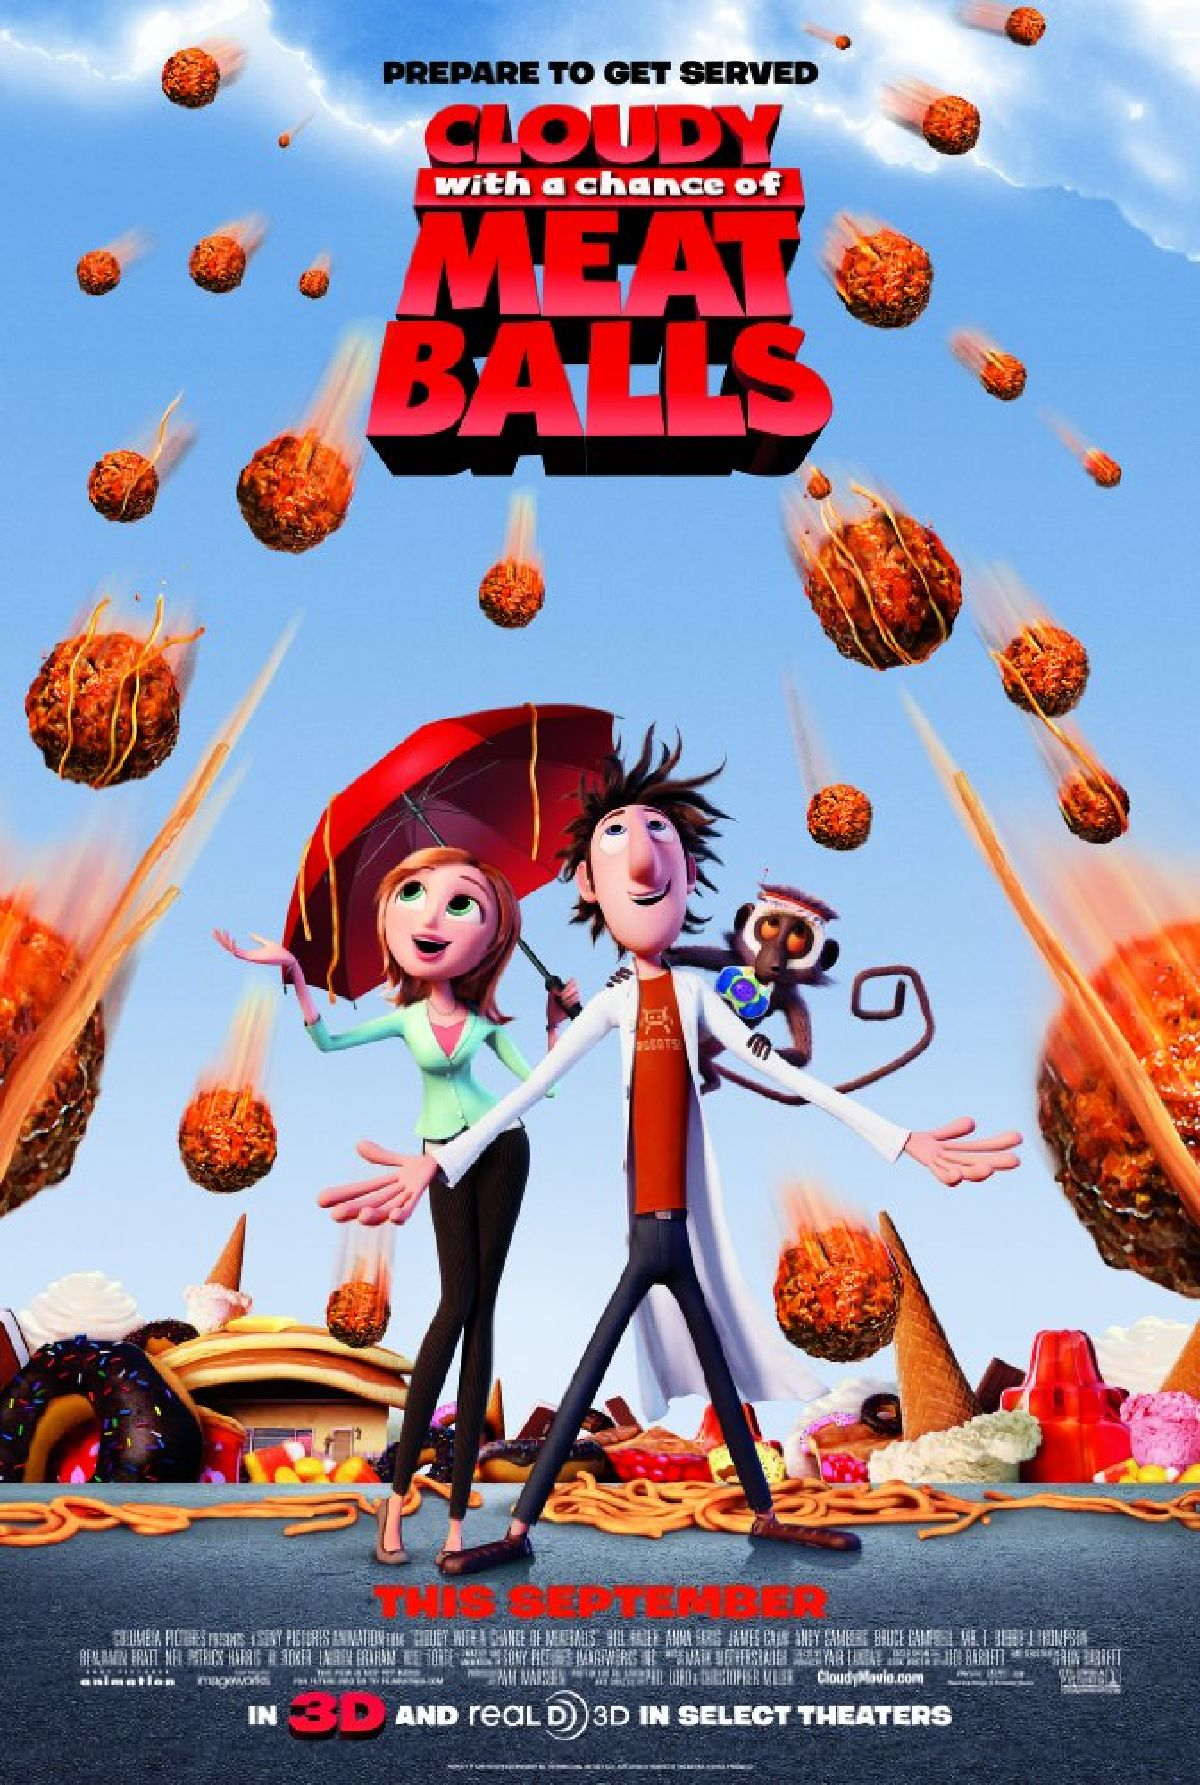 'Cloudy With a Chance of Meatballs' movie poster